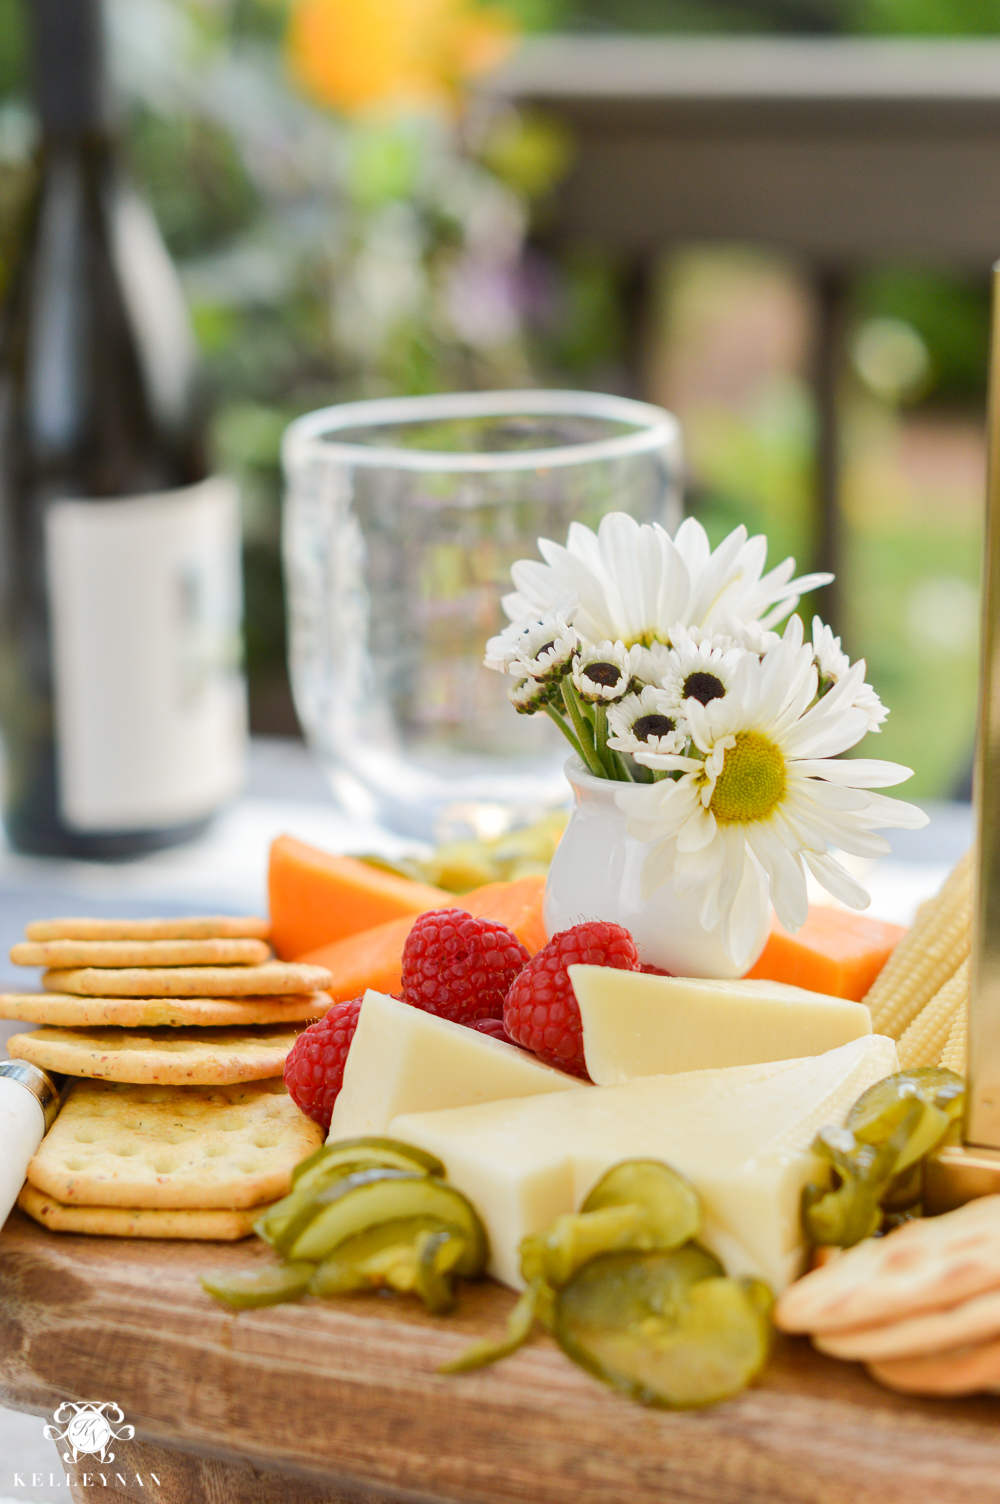 Outdoor Entertaining and Table Ideas with Cheese board appetizer centerpieces- entertaining with cheese boards